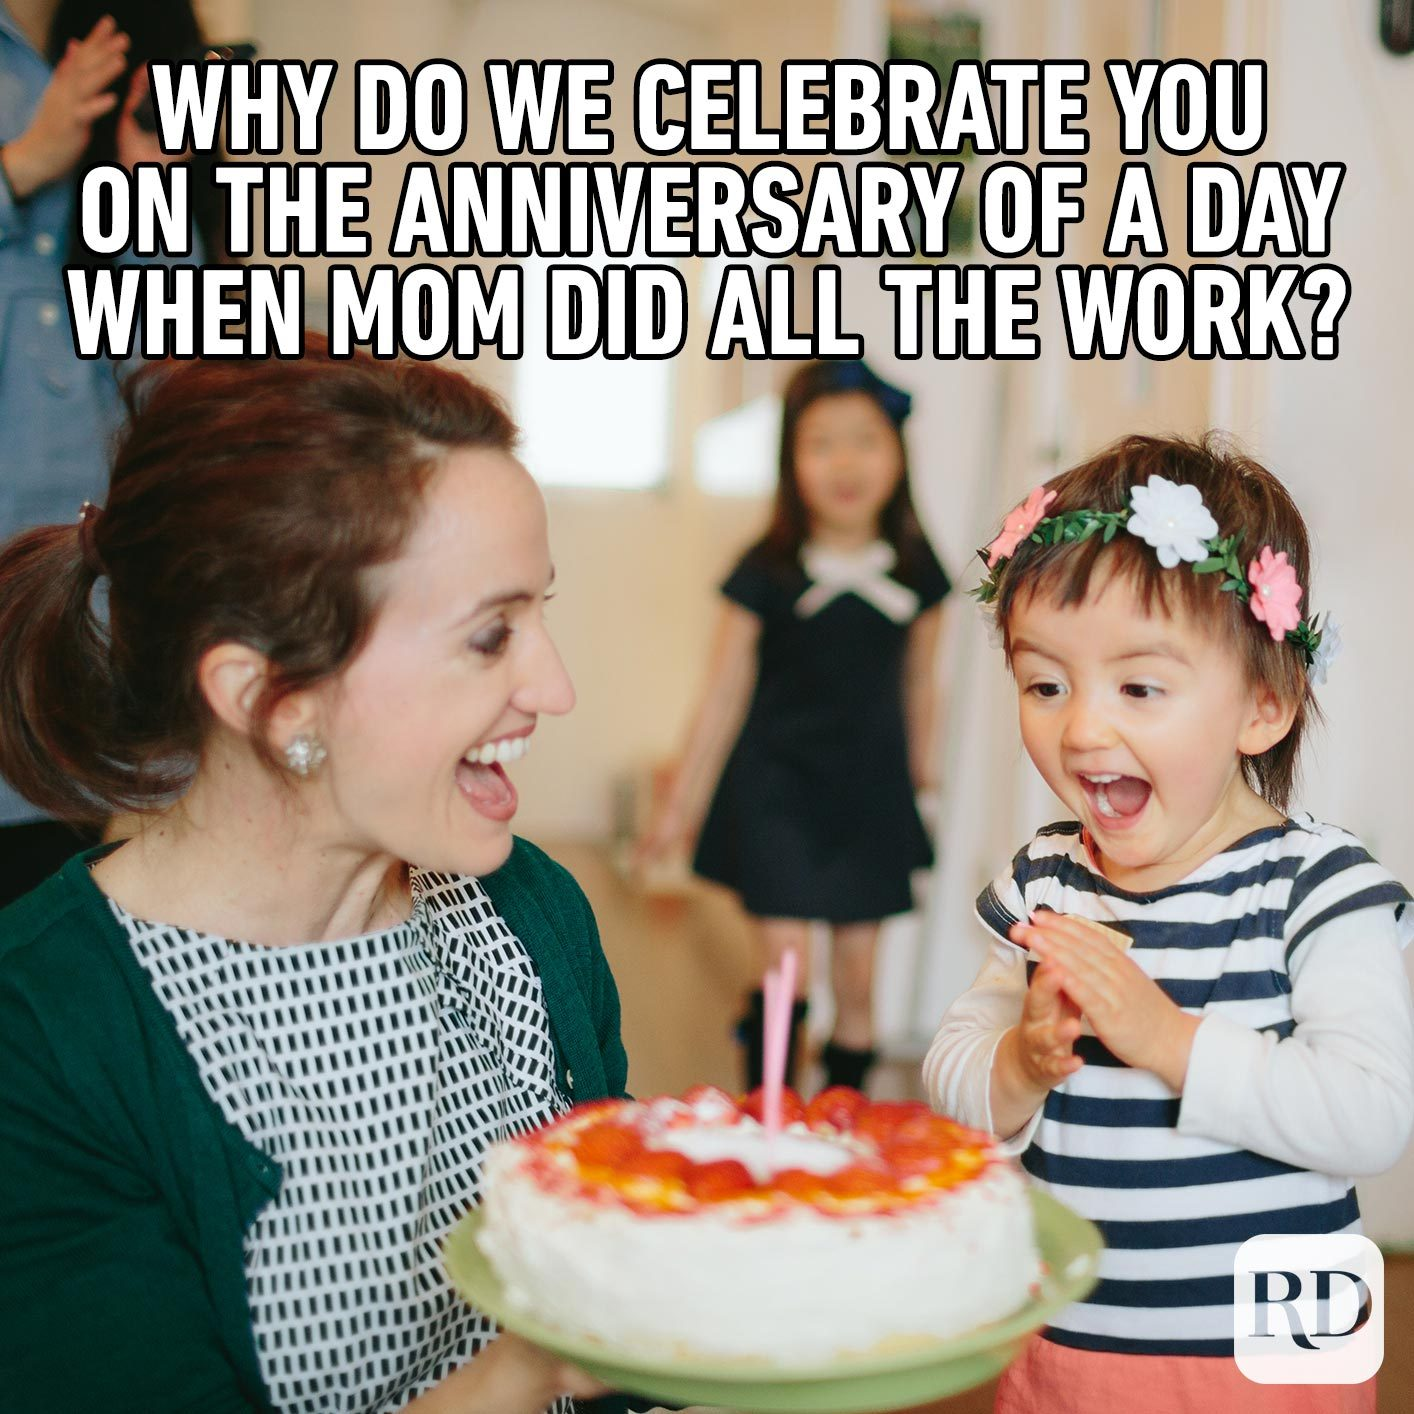 Child blowing out candles on cake. MEME TEXT: Why do we celebrate you on the anniversary of a day when Mom did all the work?!